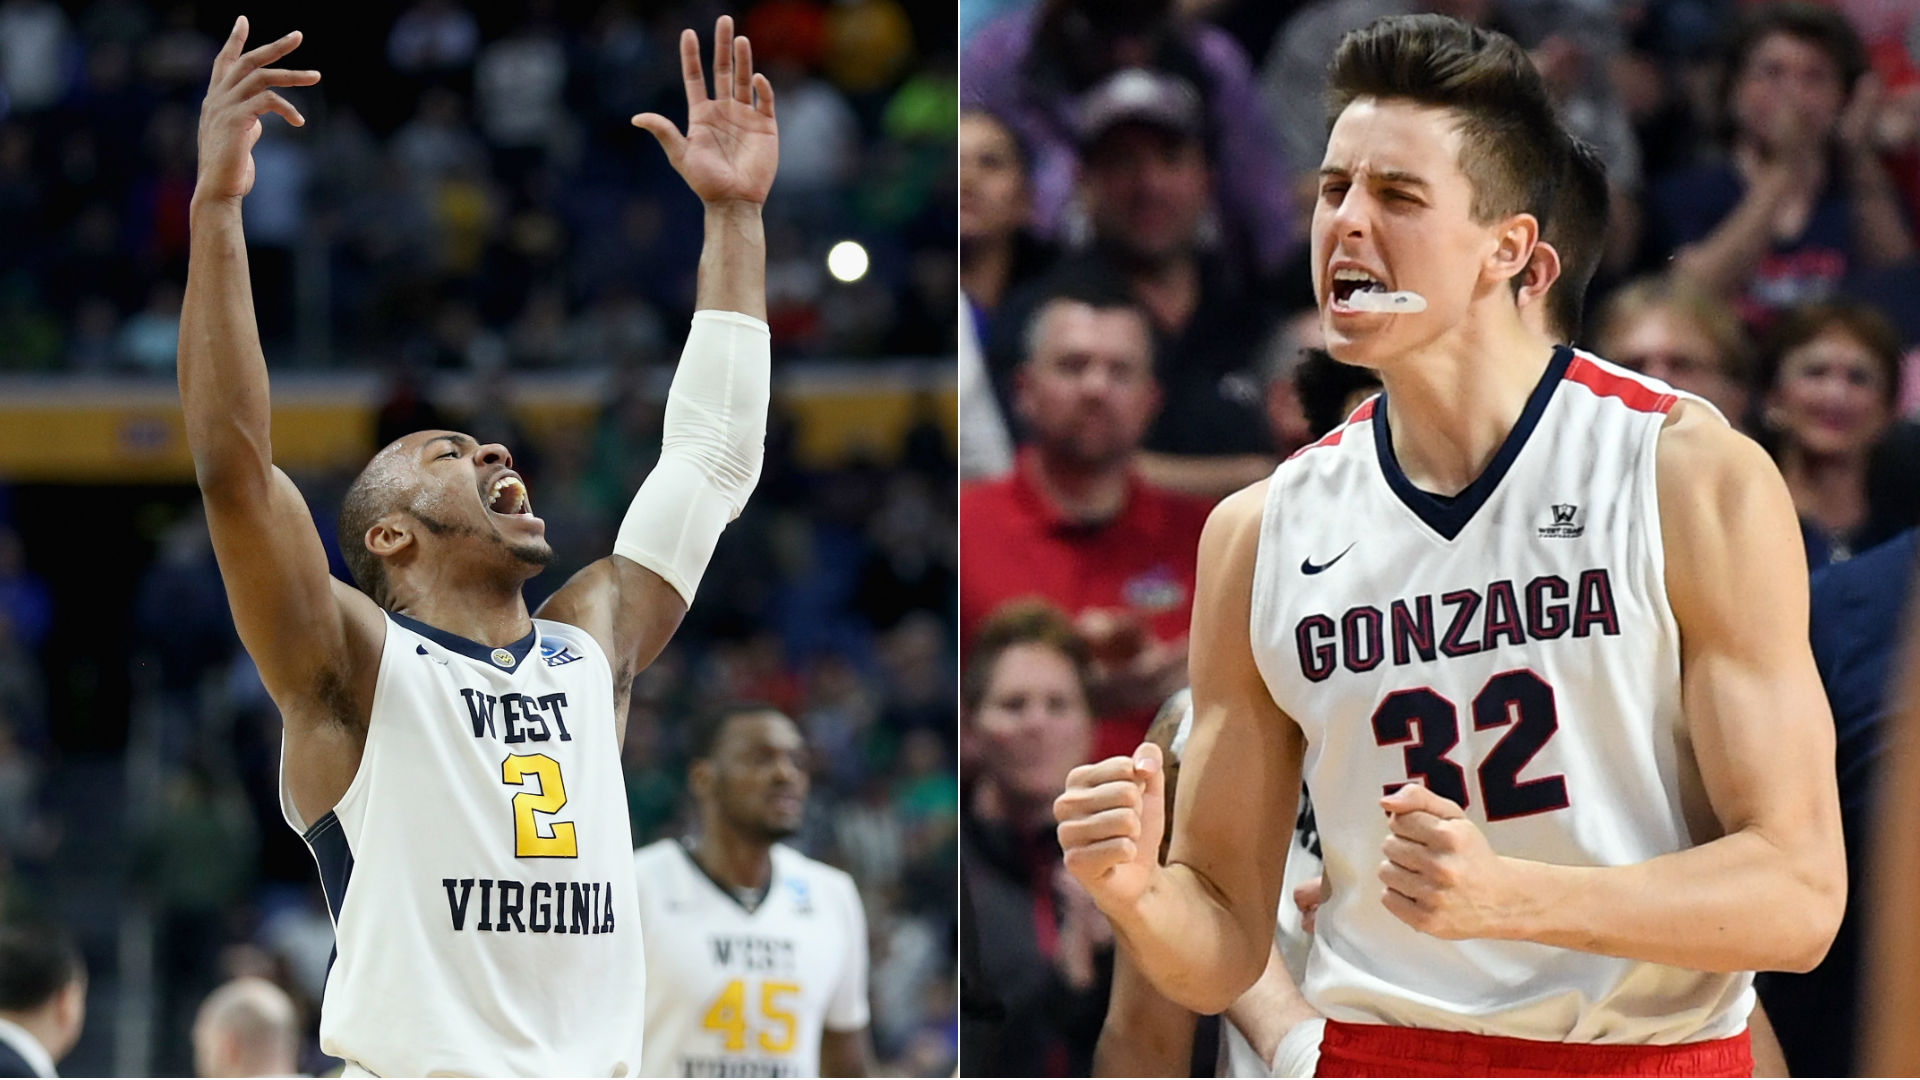 Gonzaga's Defense Measures Up - And Then Some - Against West Virginia's